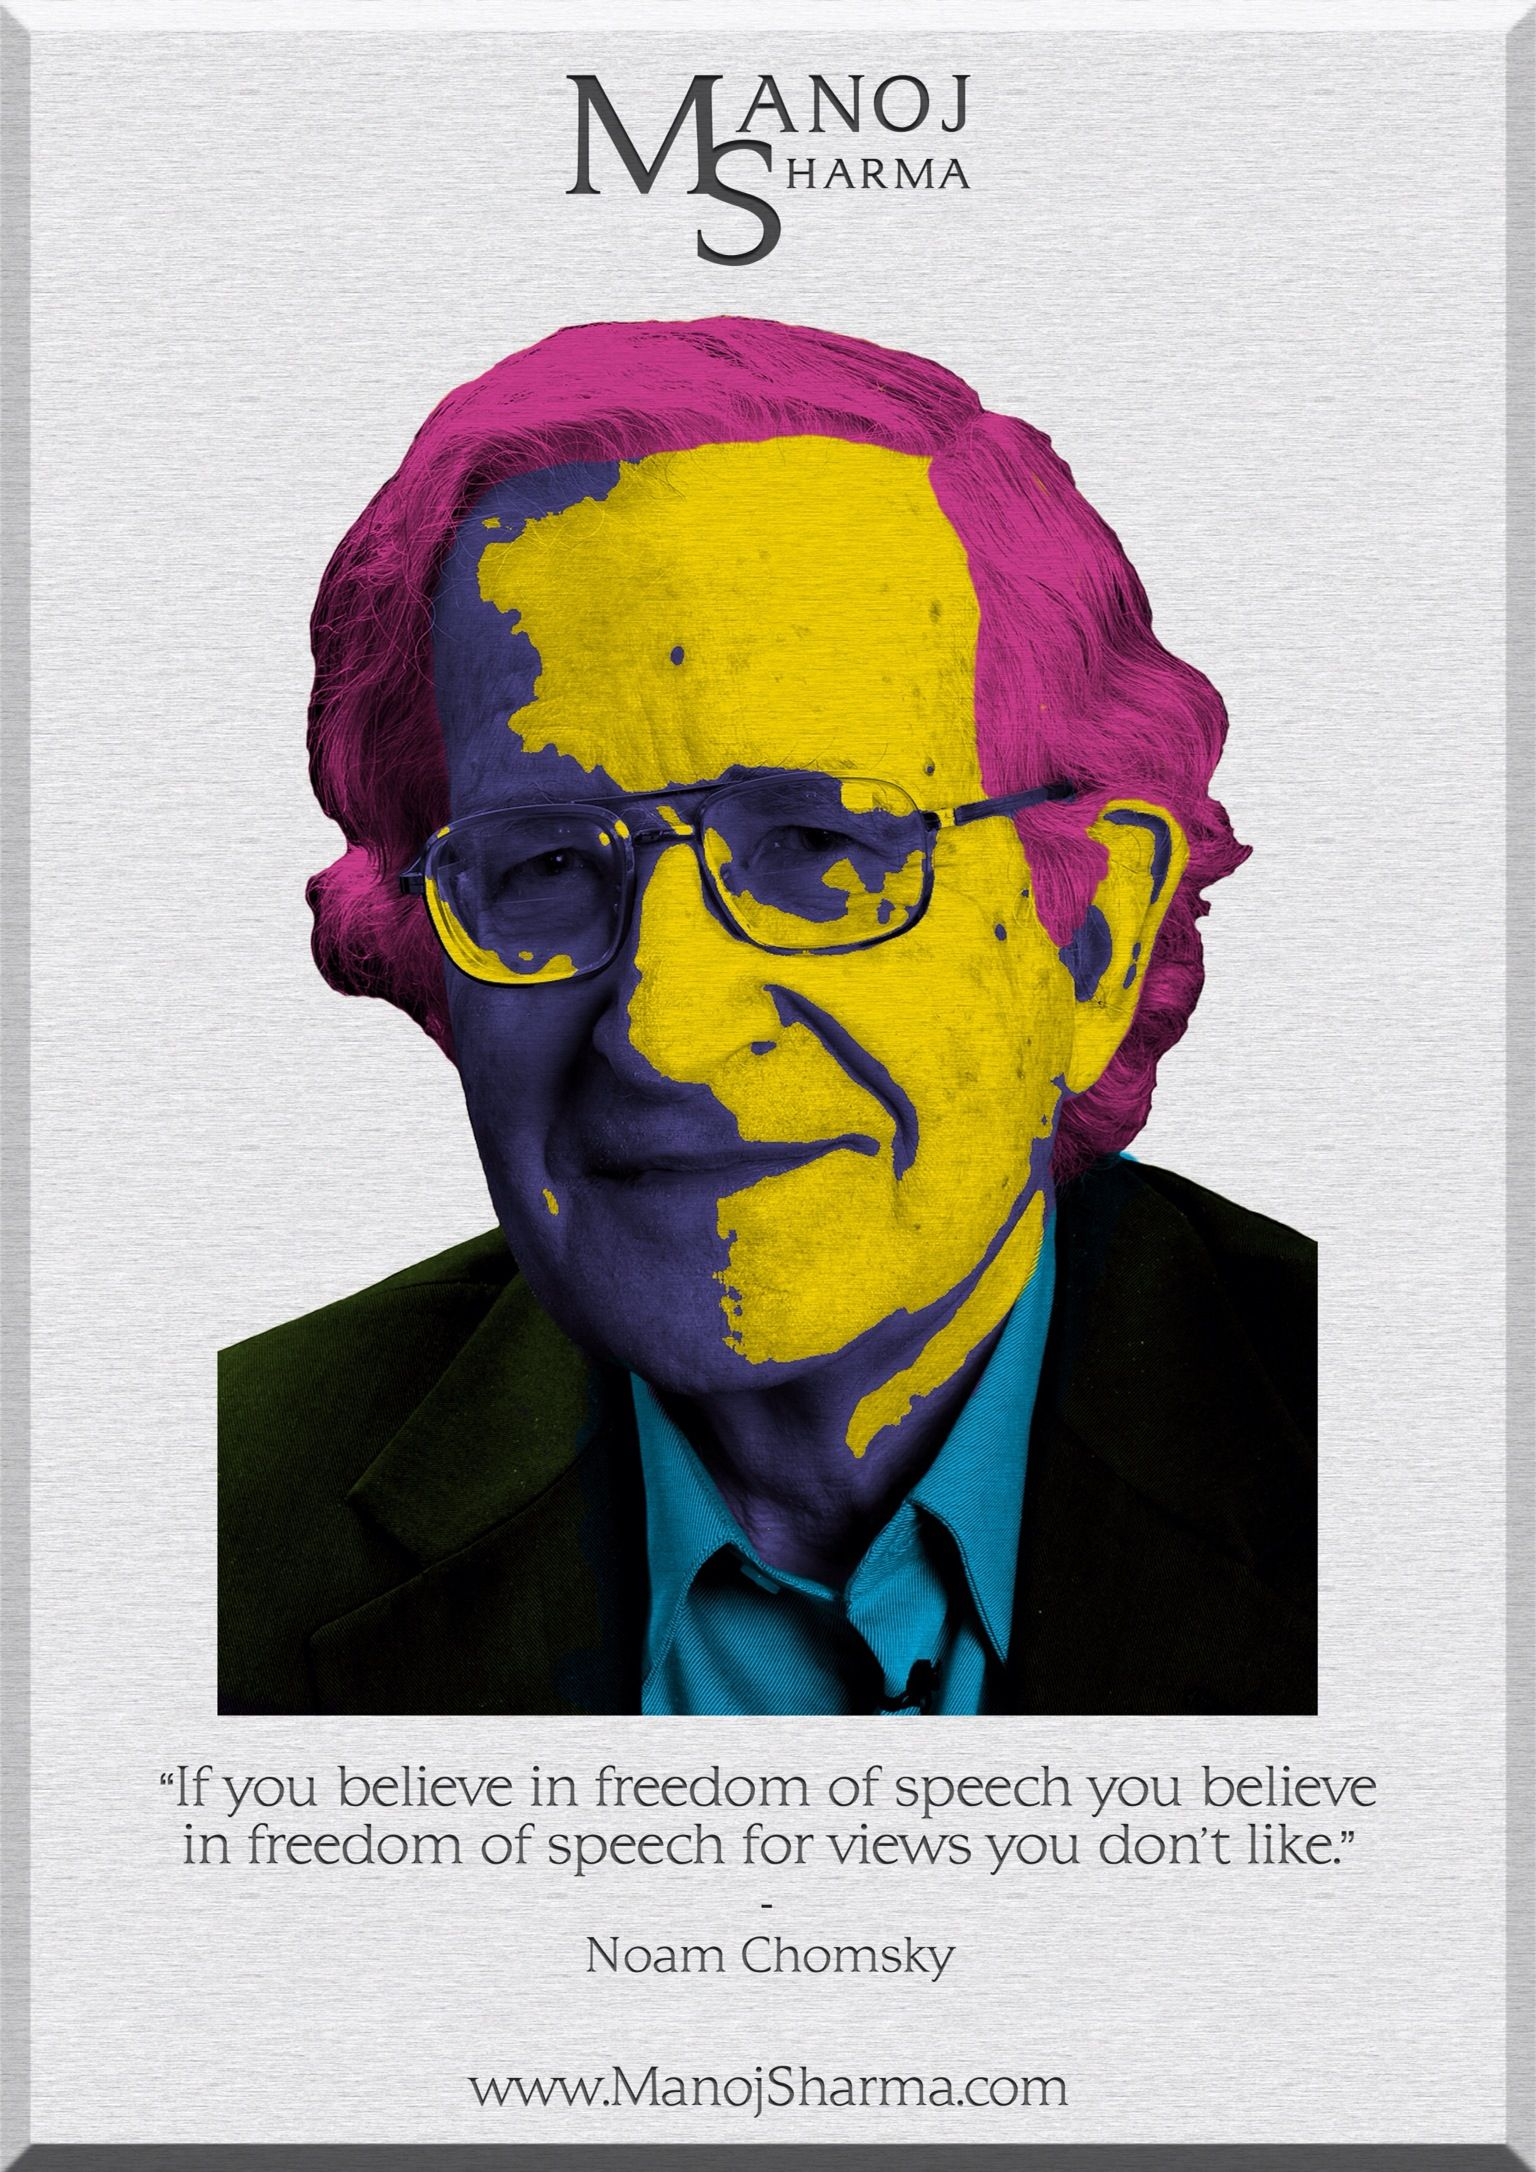 best images about noam chomsky language crime 17 best images about noam chomsky language crime and noam chomsky